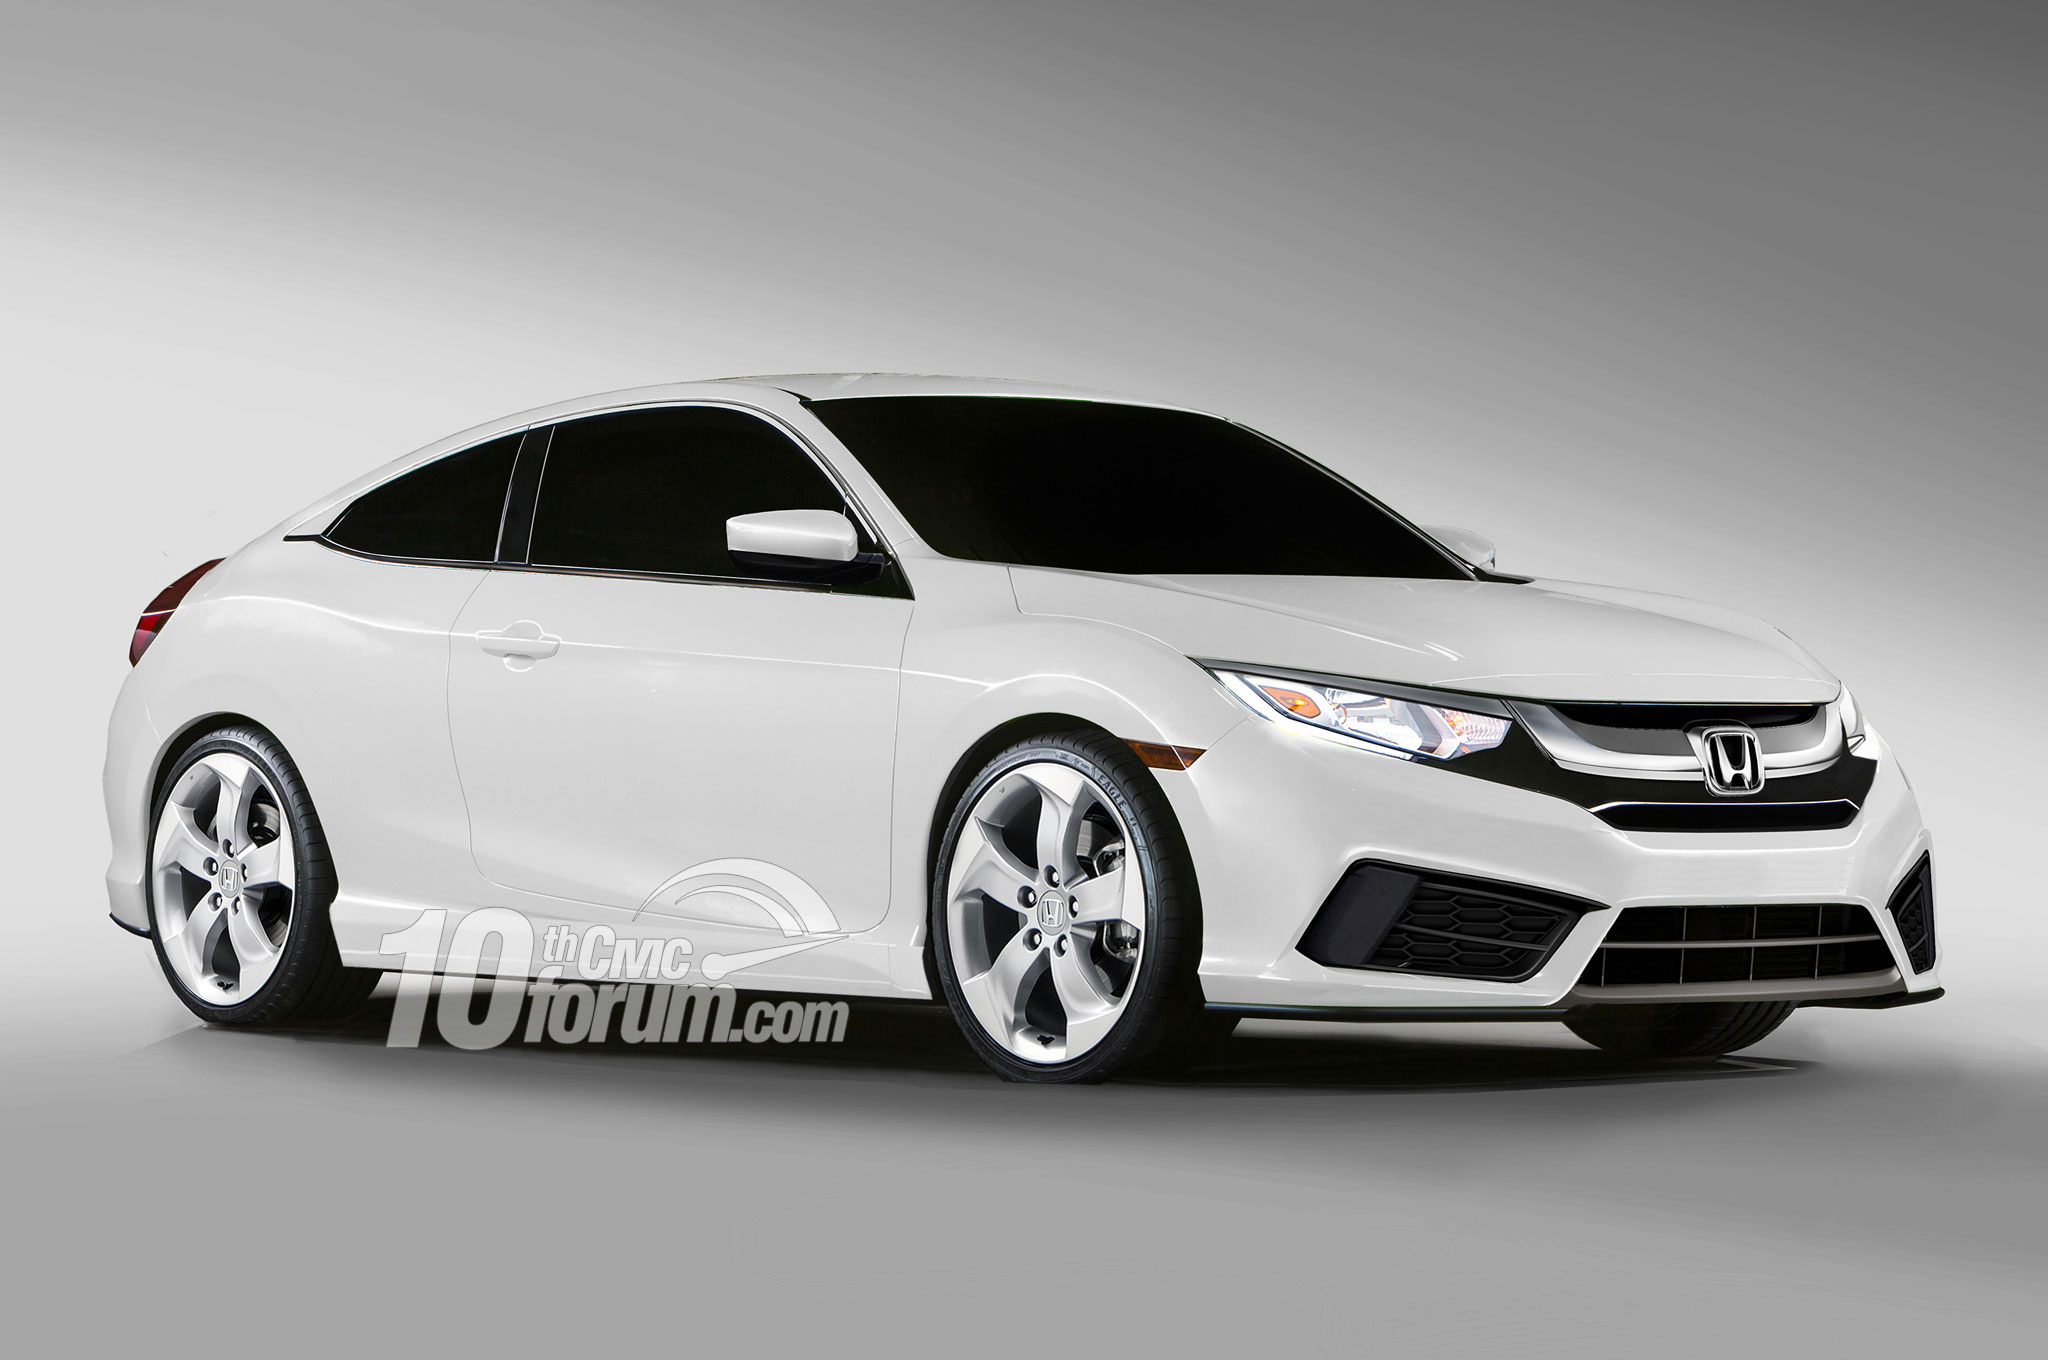 2016 honda civic coupe hatchback and sedan rendered for Honda 2016 models